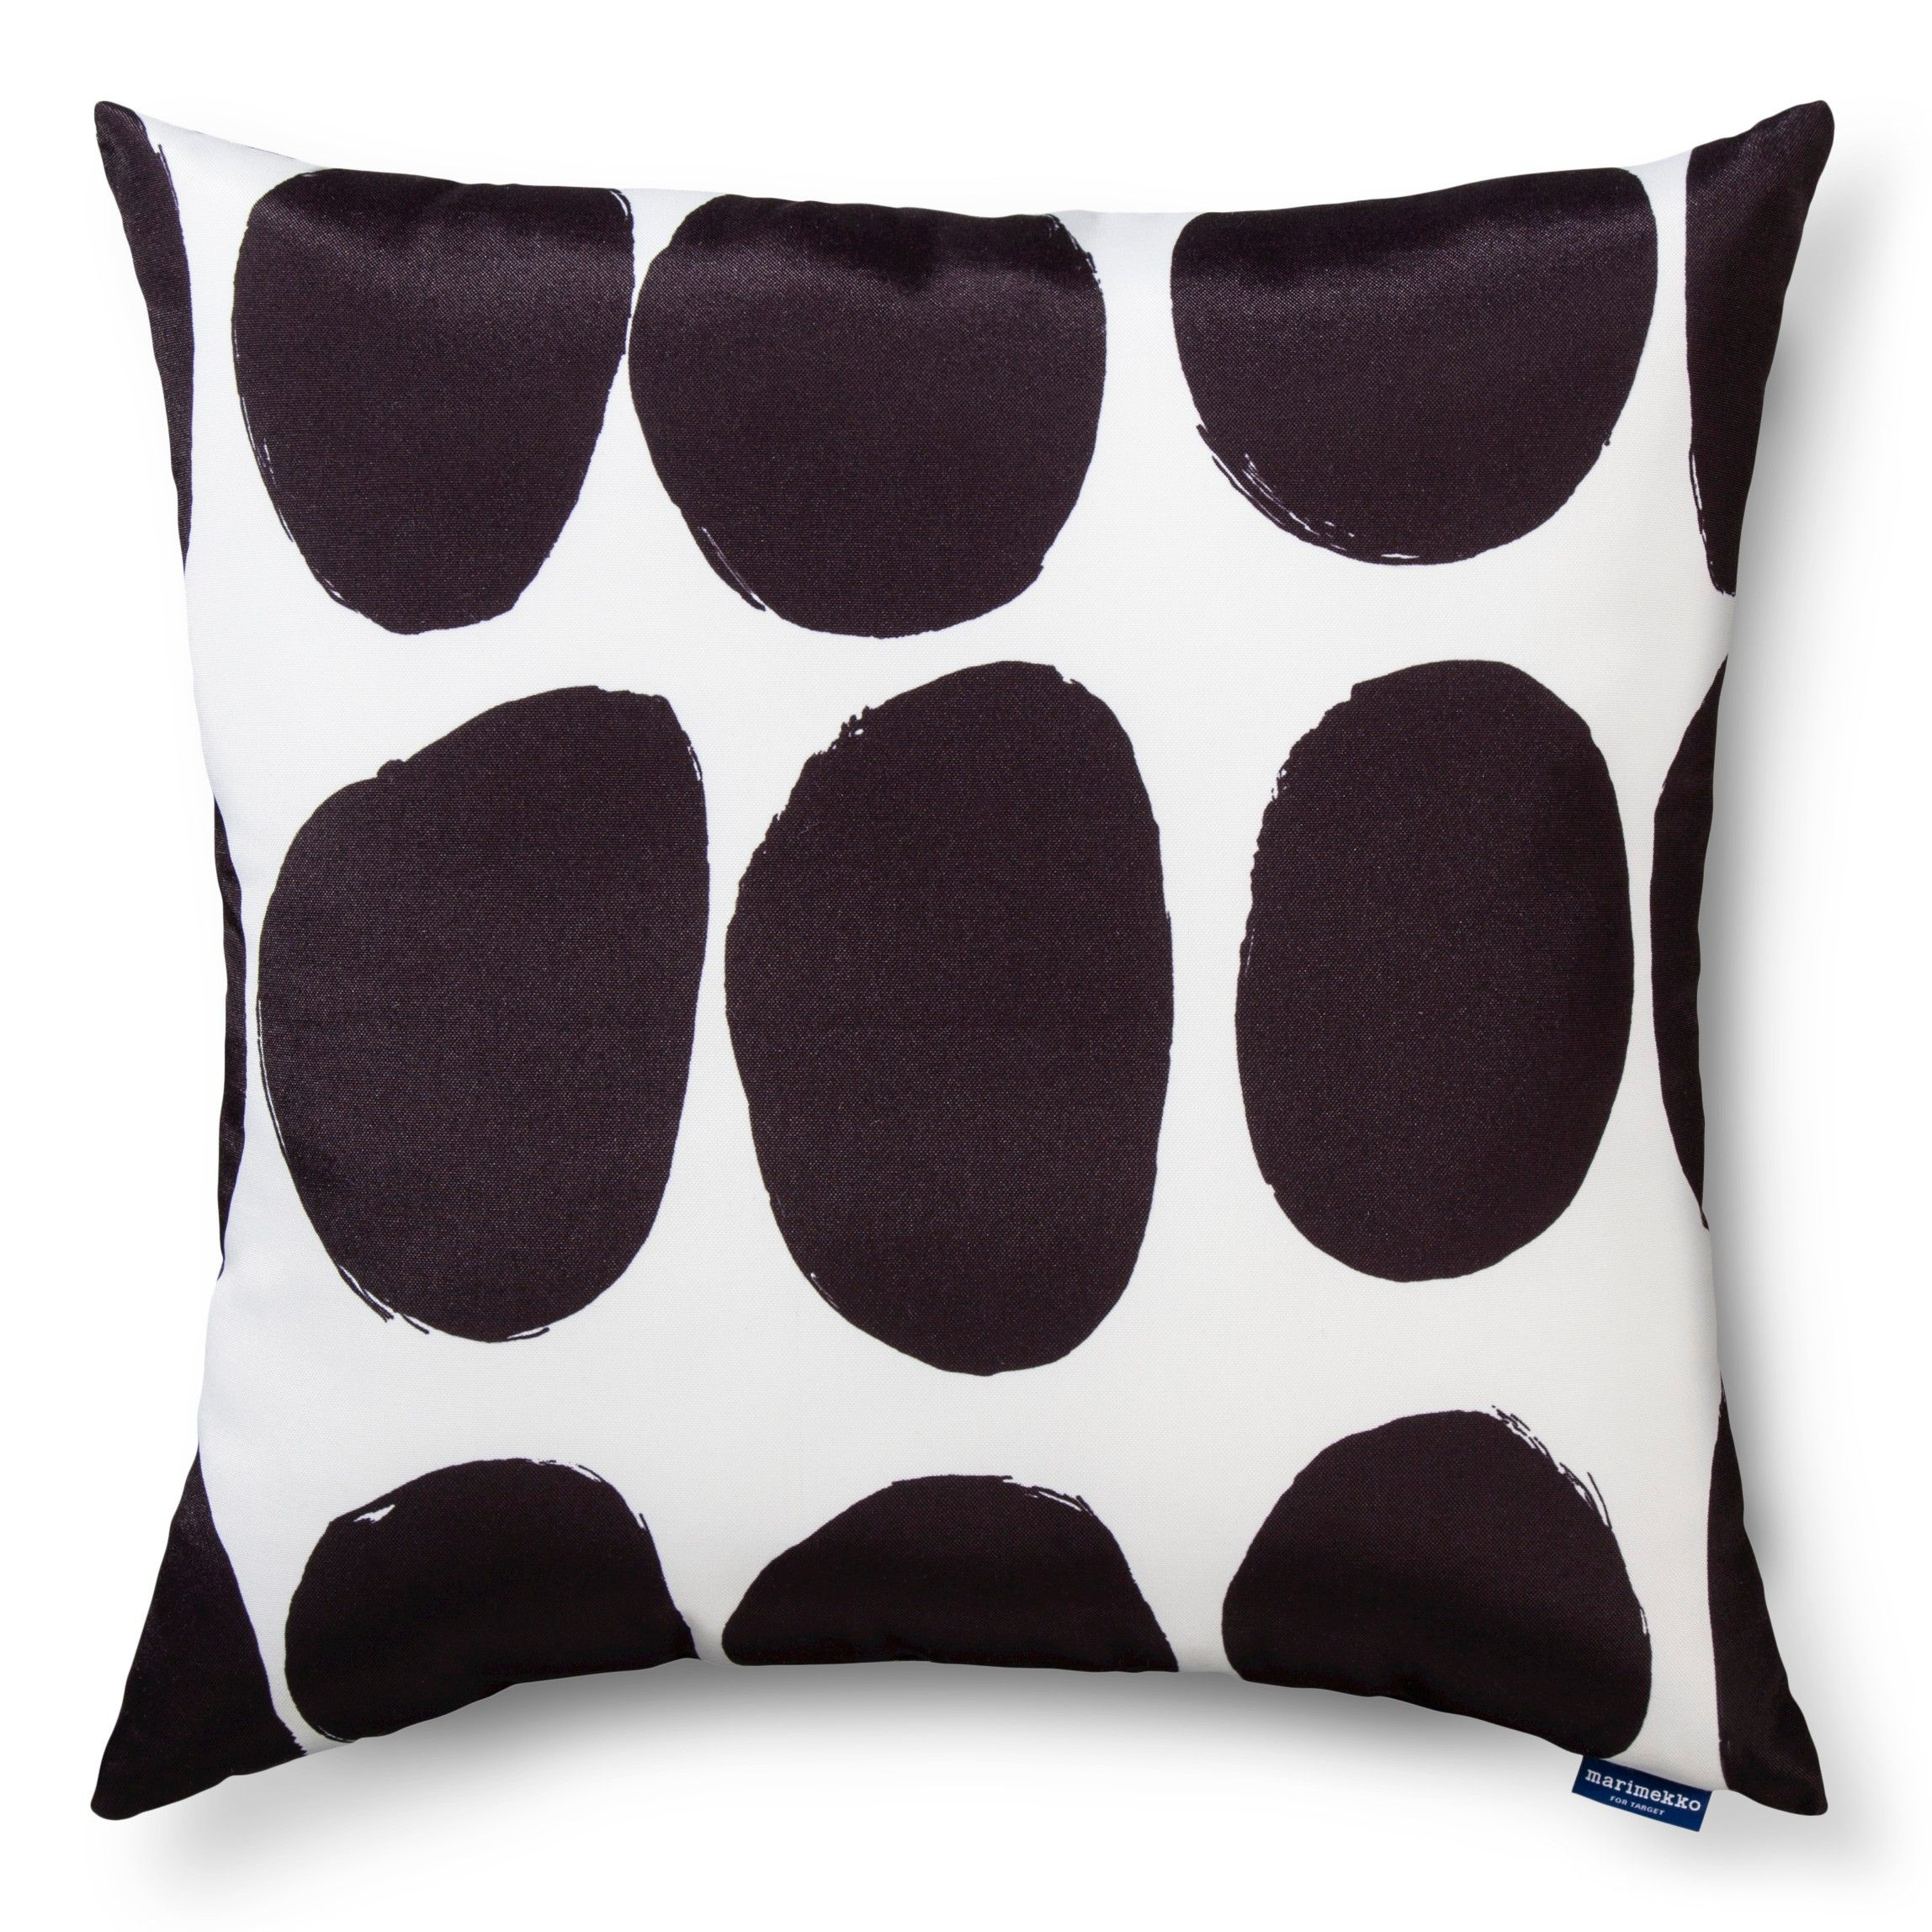 Target Marimekko Pillow Outdoor Pillows Pillows Marimekko